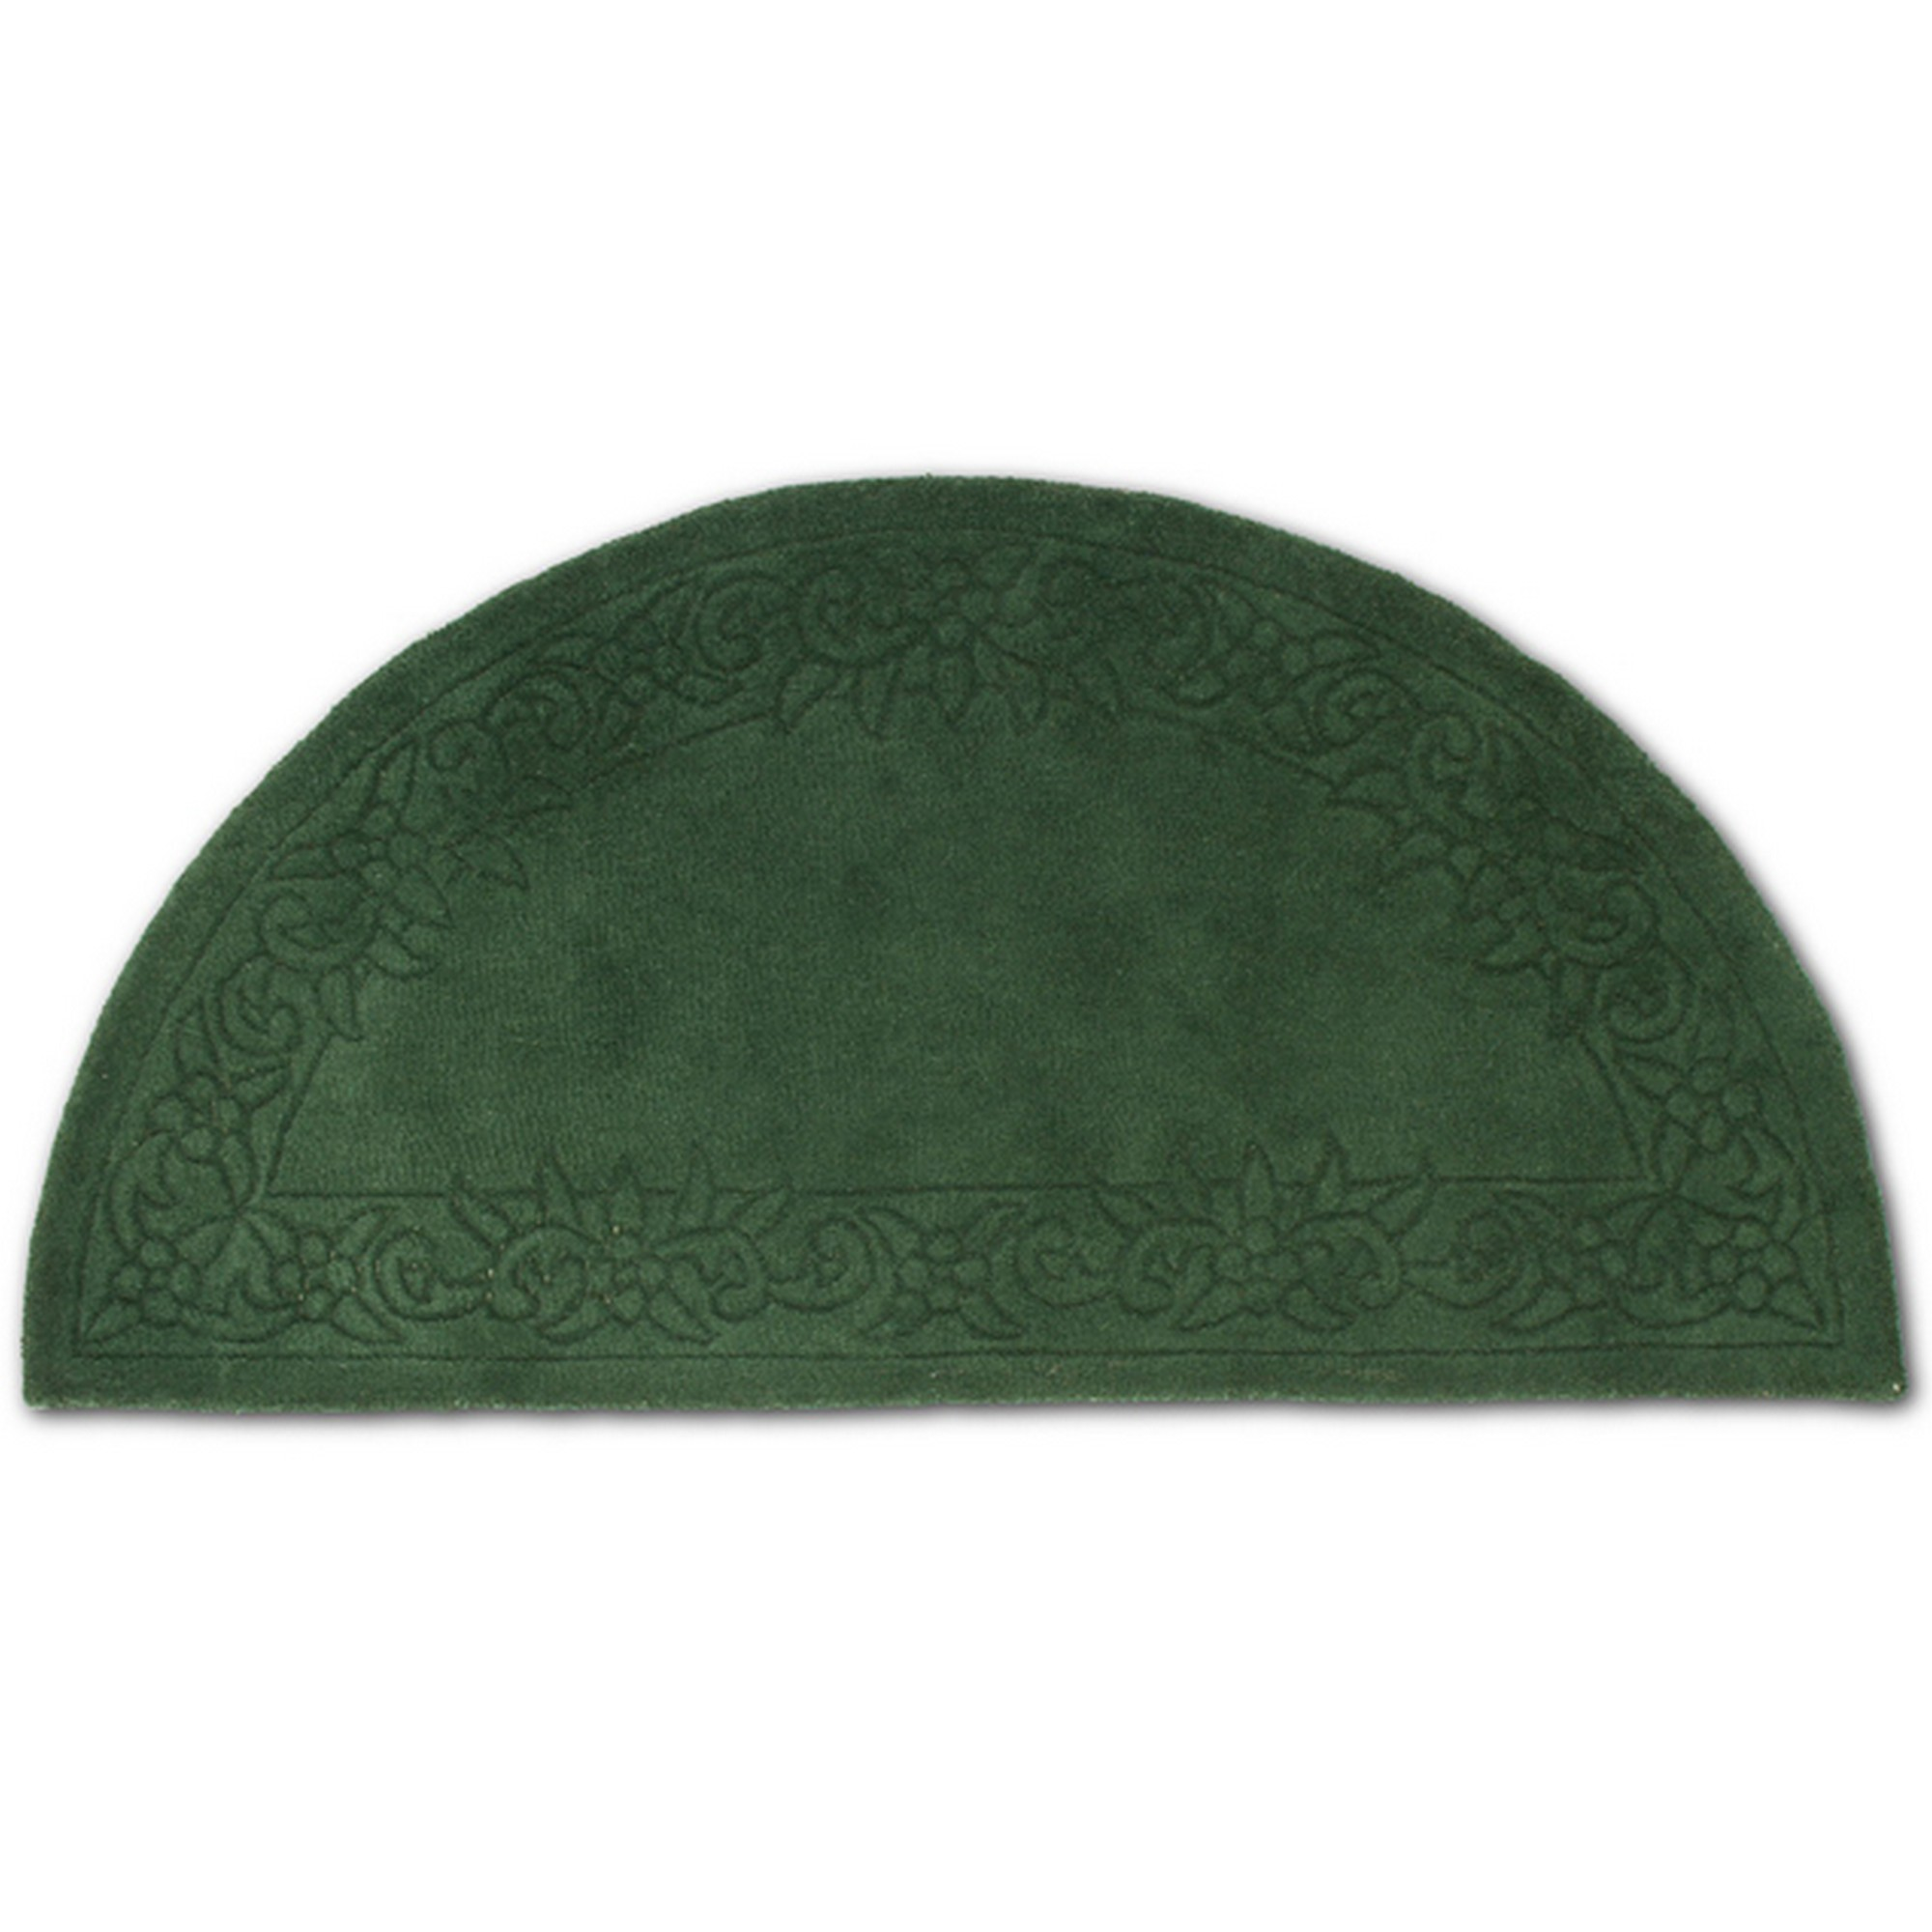 Royale Half Moon - Traditional Indian Wool in Dark Green